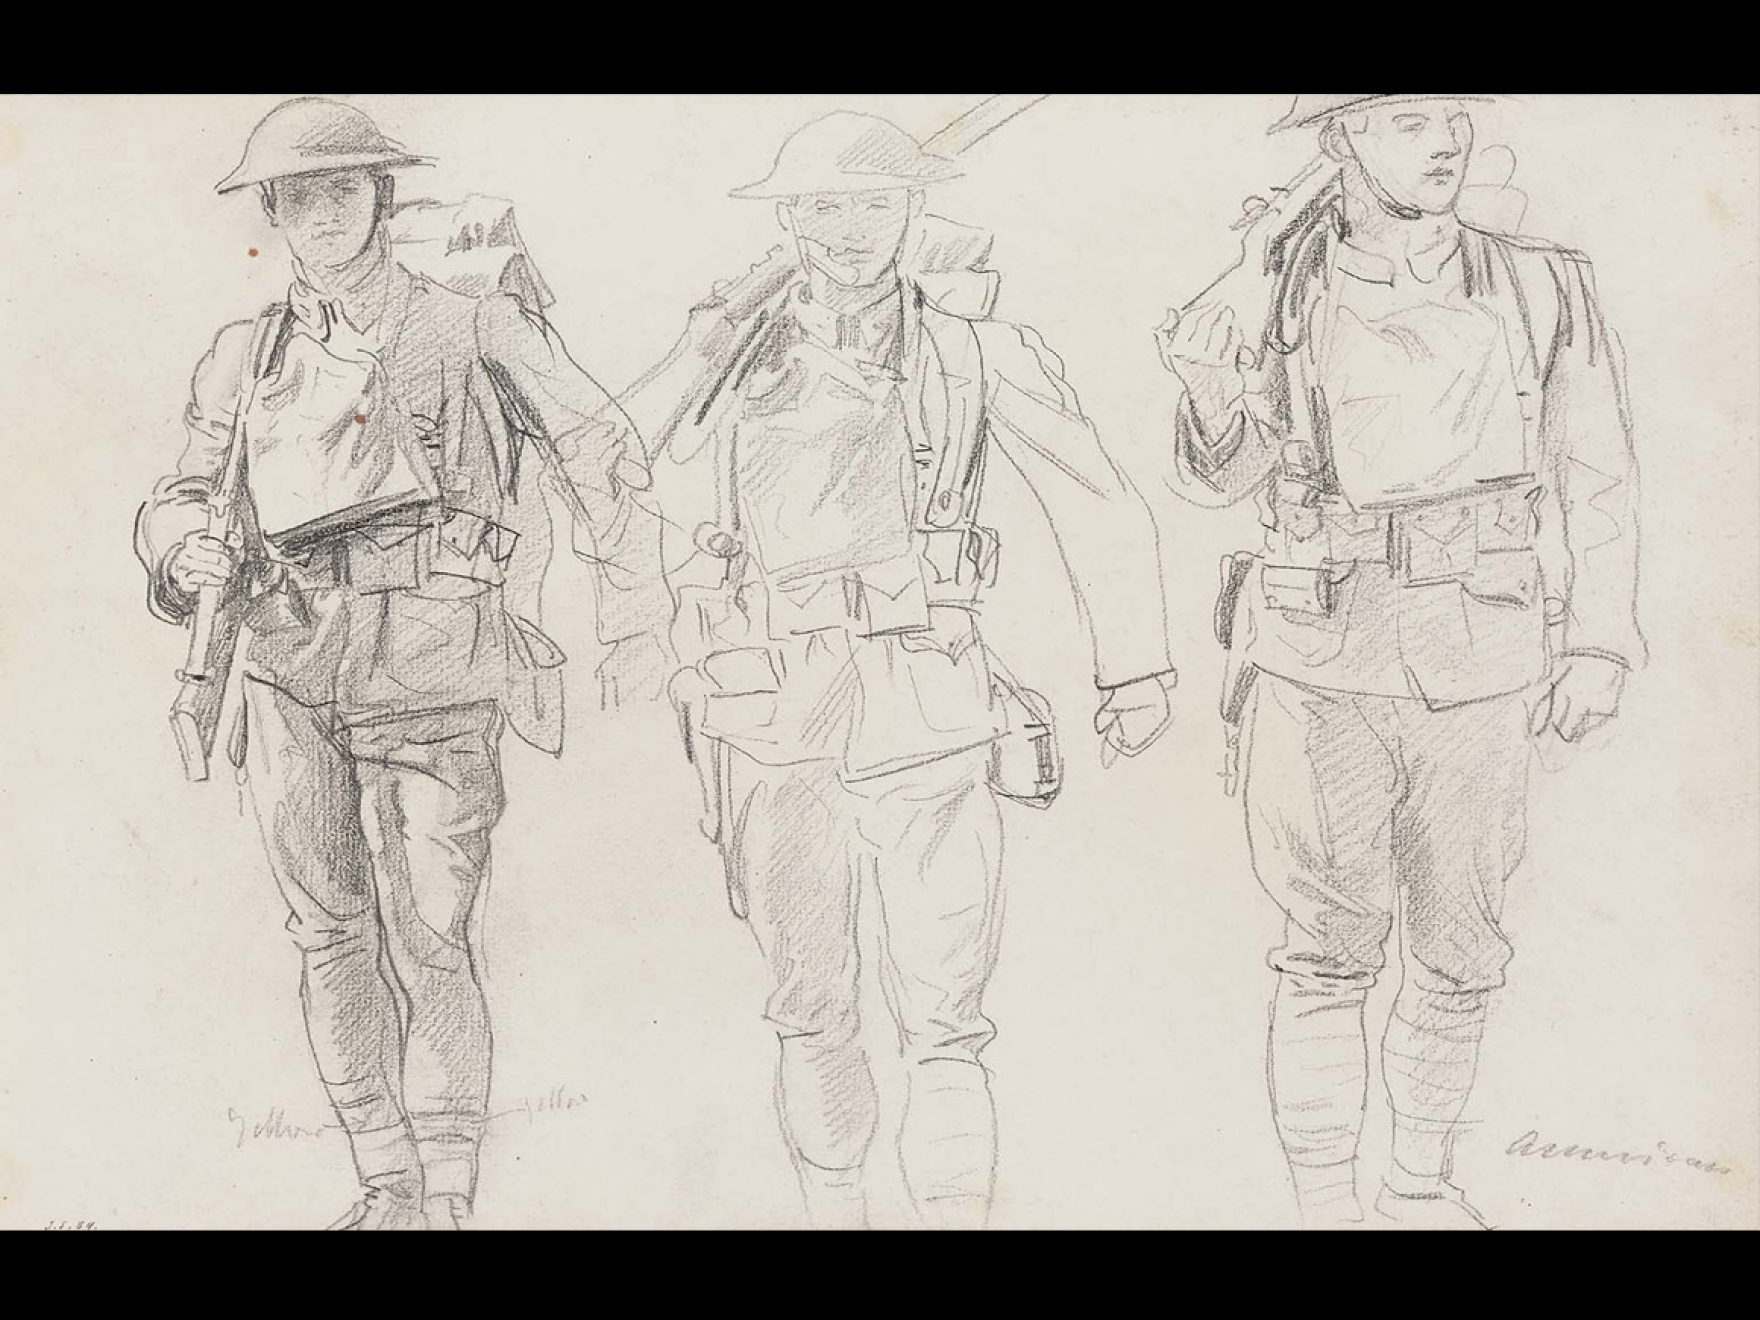 John Singer Sargent, Sketch of Three Soldiers